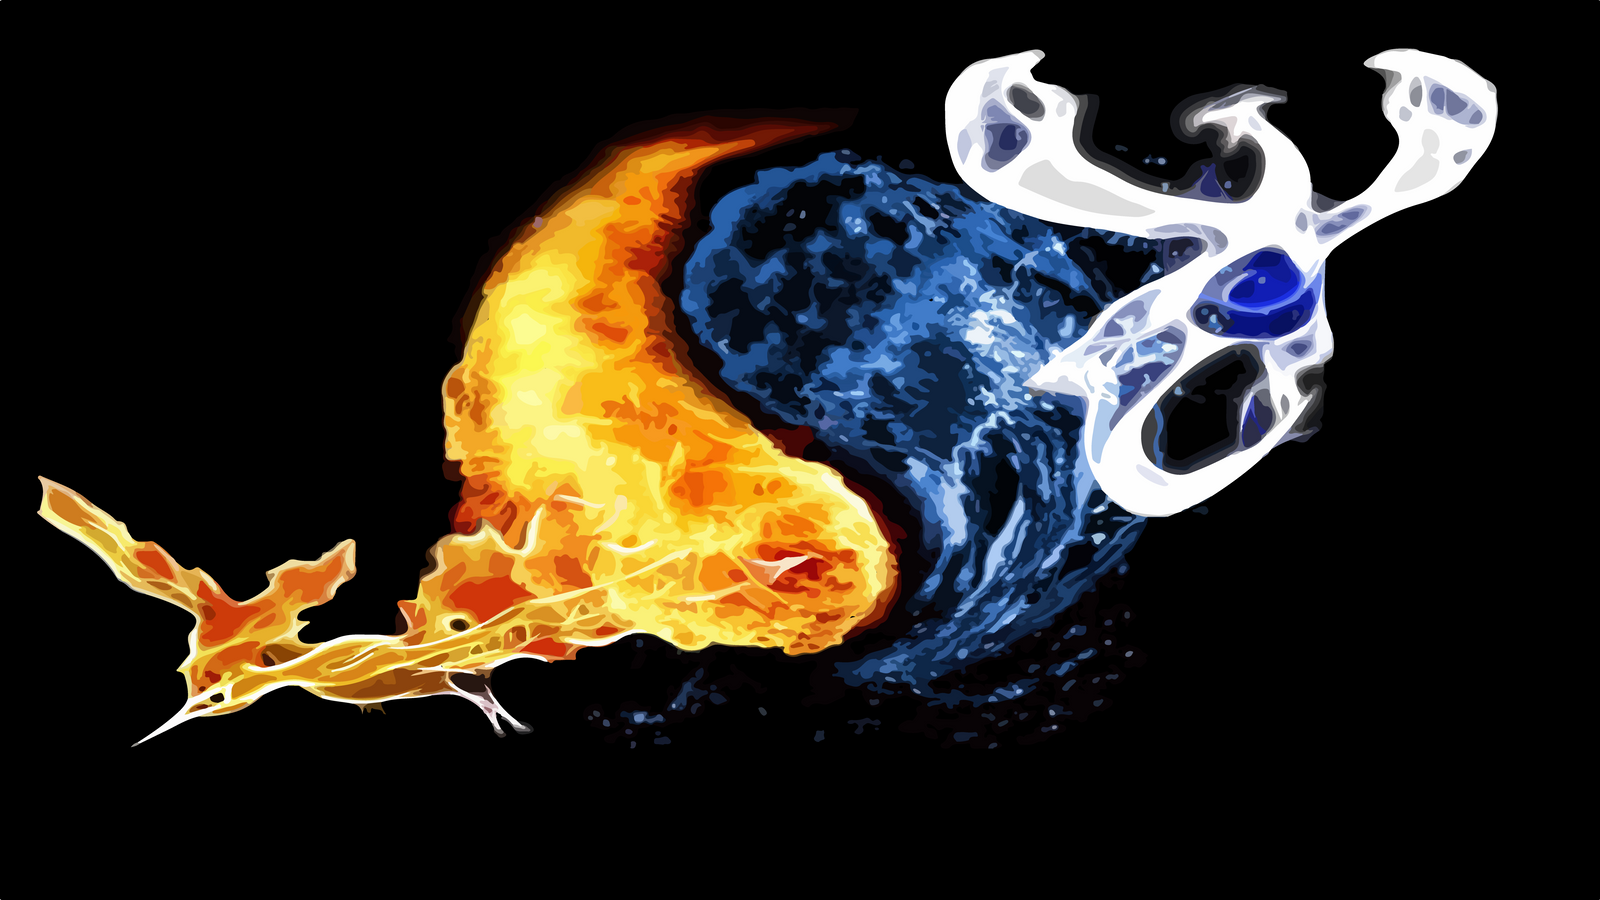 moltres and lugia wallpaper by acastrodesigner on deviantart